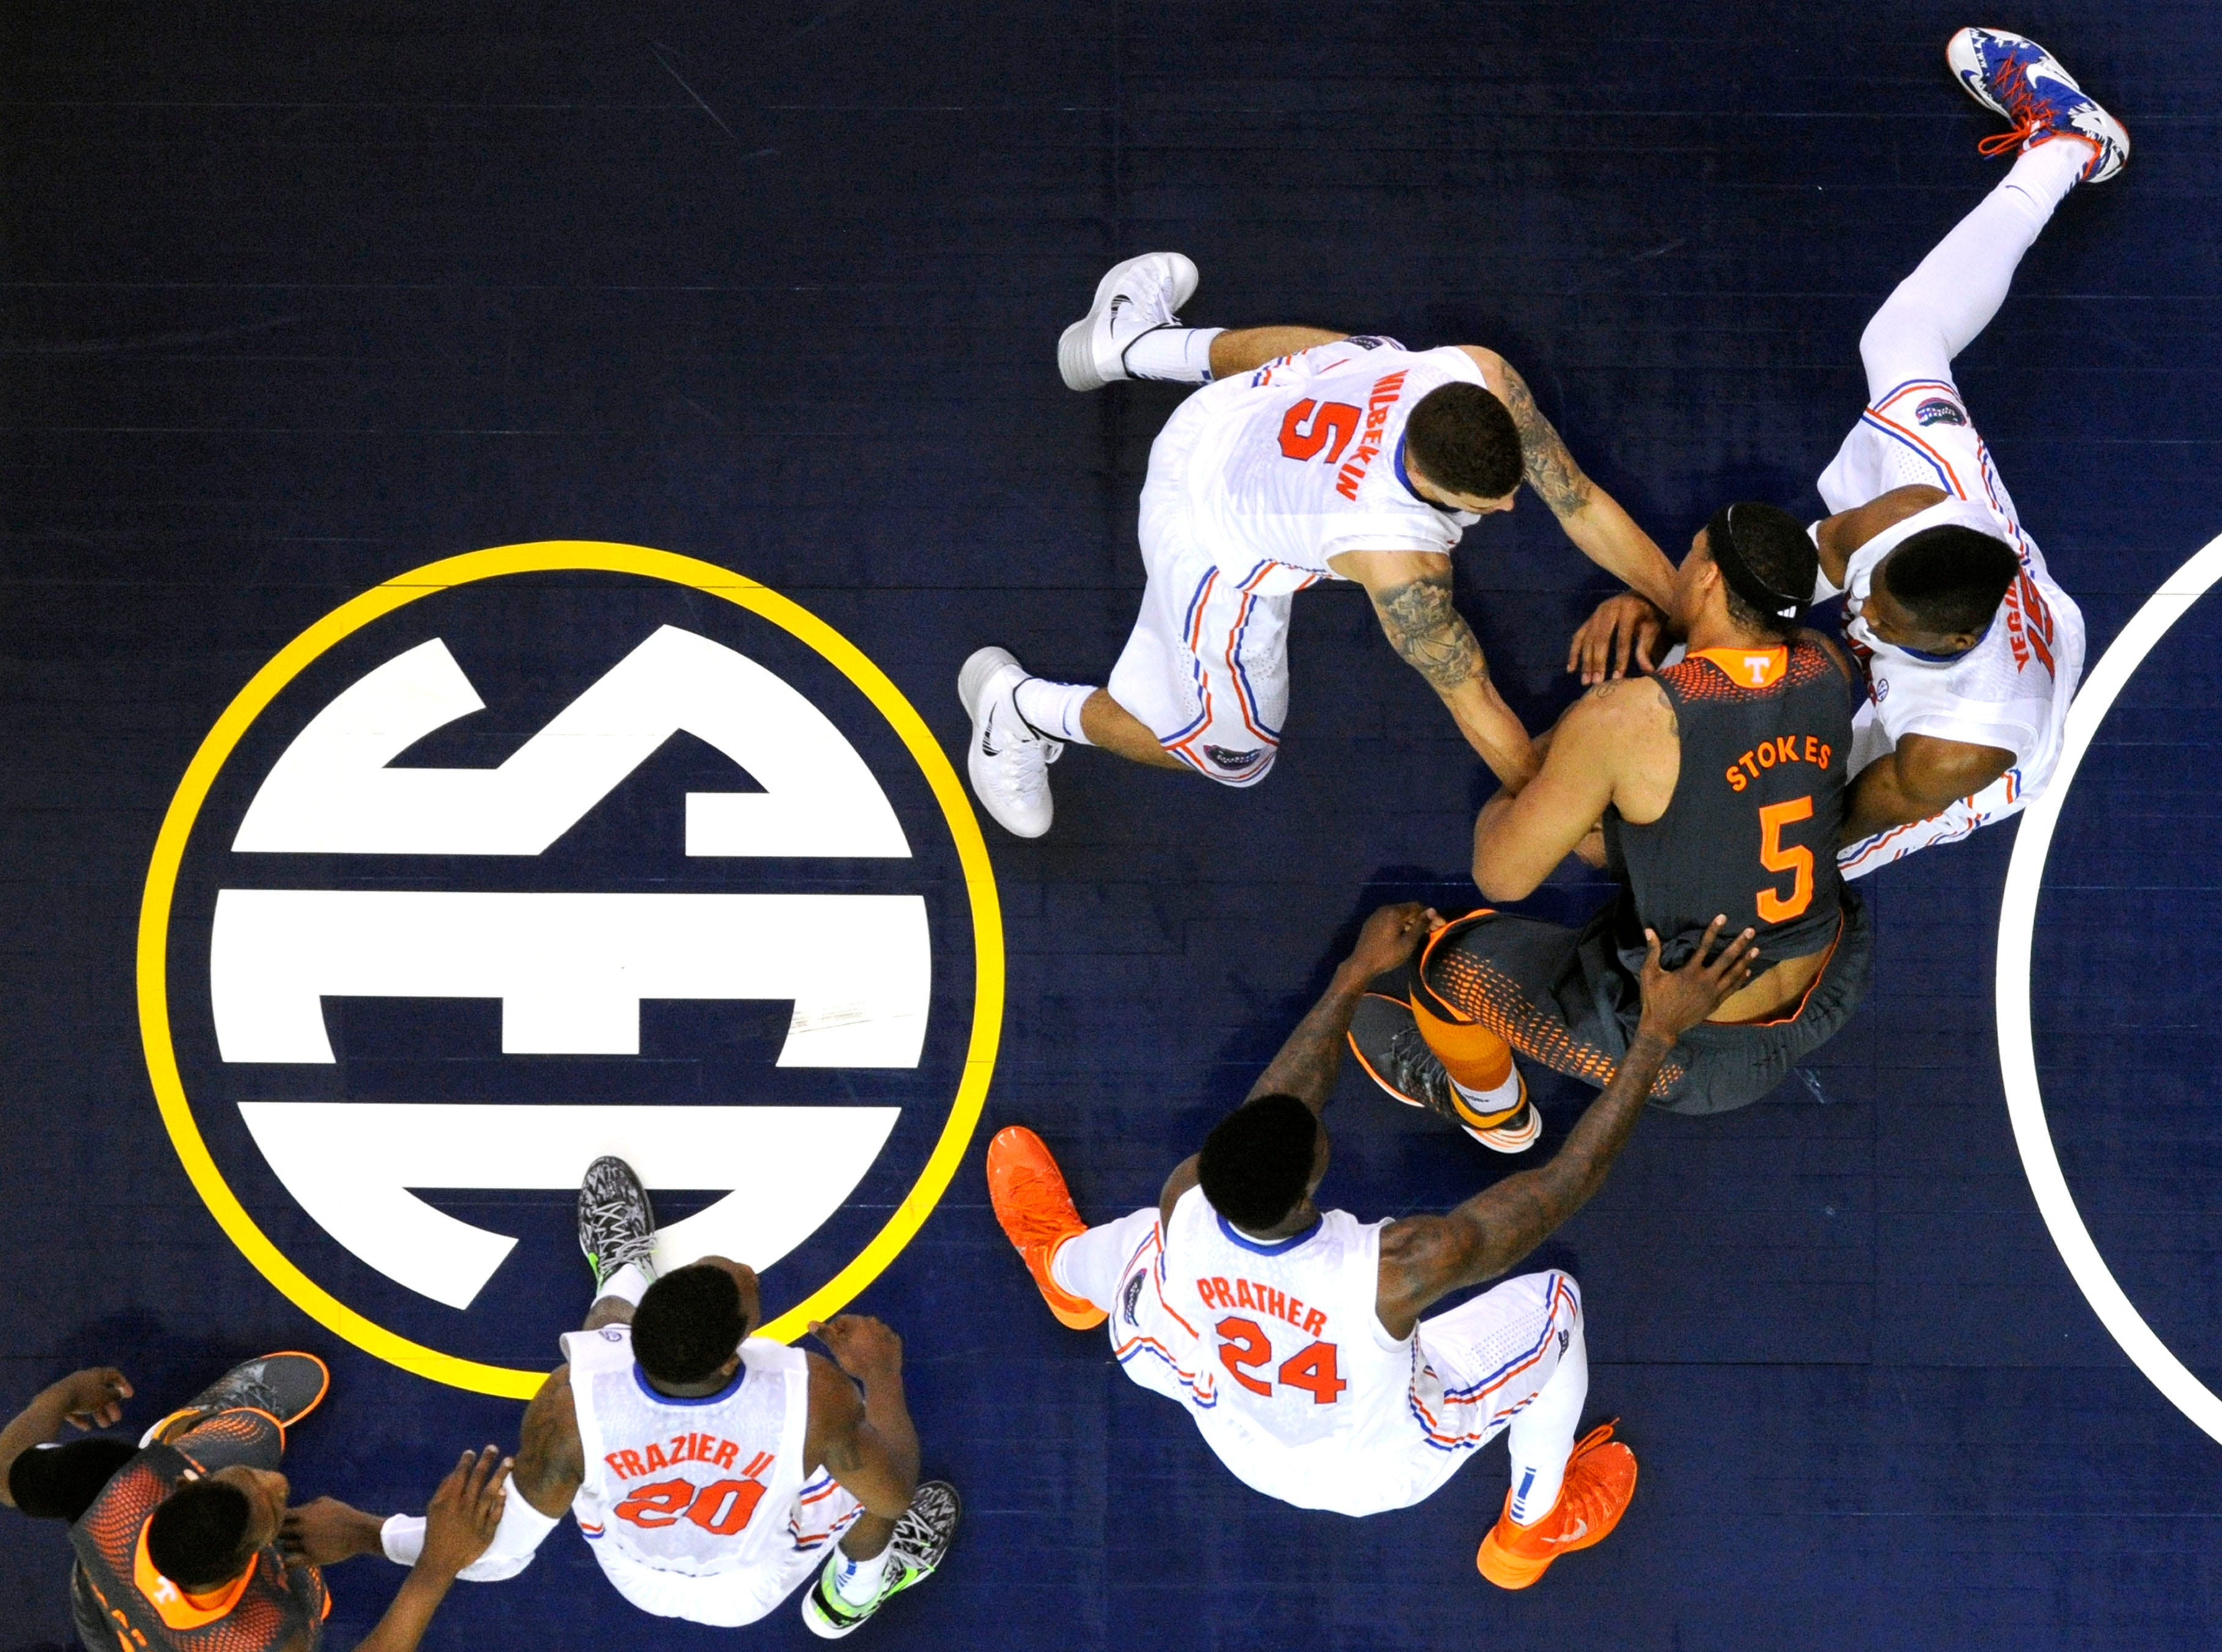 Florida forward Casey Prather (24), Florida guard Scottie Wilbekin (5), and Florida forward Will Yeguete (15) swarm Tennessee forward Jarnell Stokes (5) during the second half of an SEC tournament semifinal game at the Georgia Dome in Atlanta on Saturday, March 15, 2014. Tennessee lost 56-49.